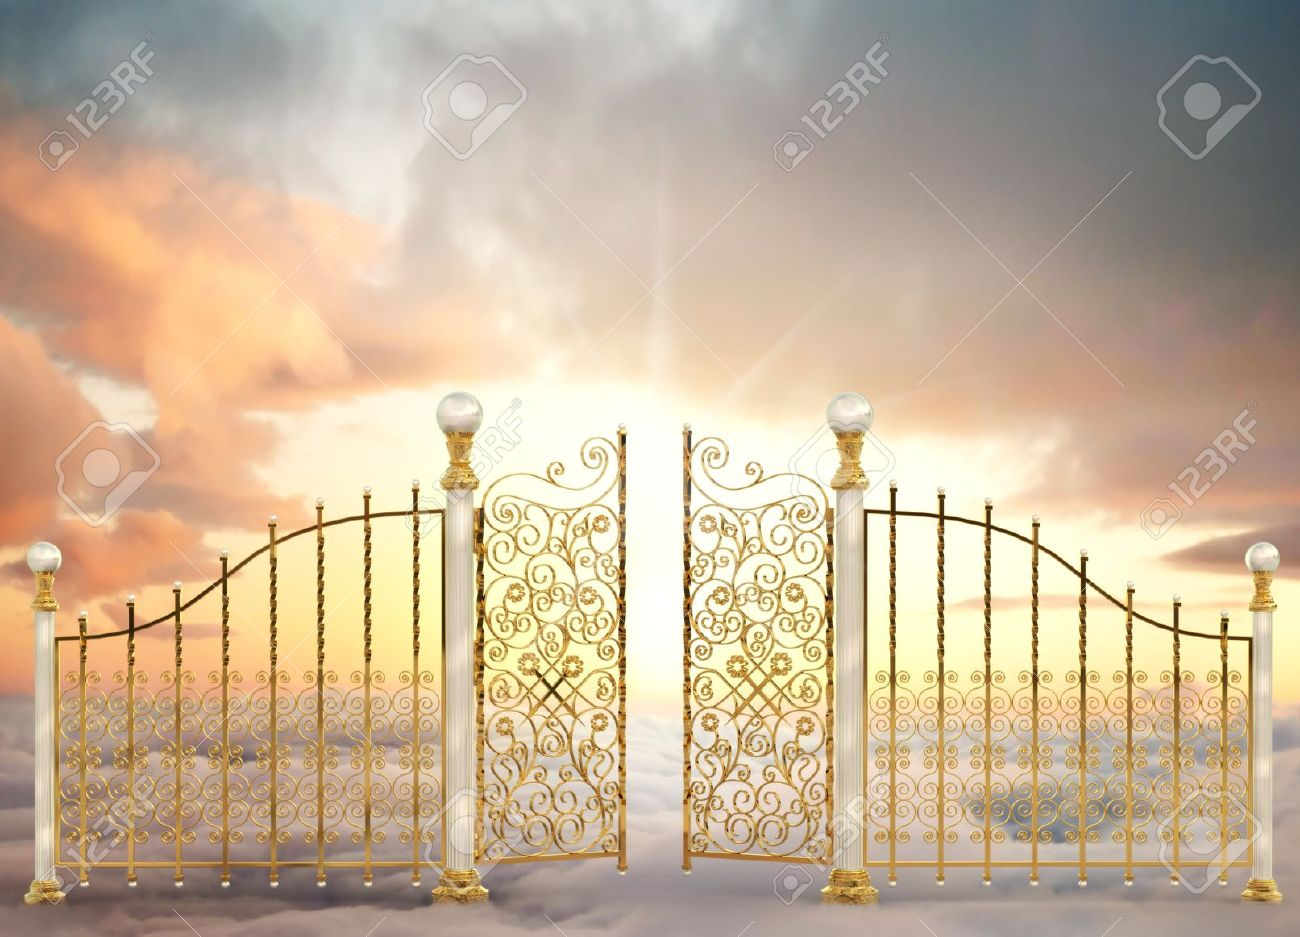 [Image: 7059029-pearly-gates-of-heaven-opening-t...ndscap.jpg]